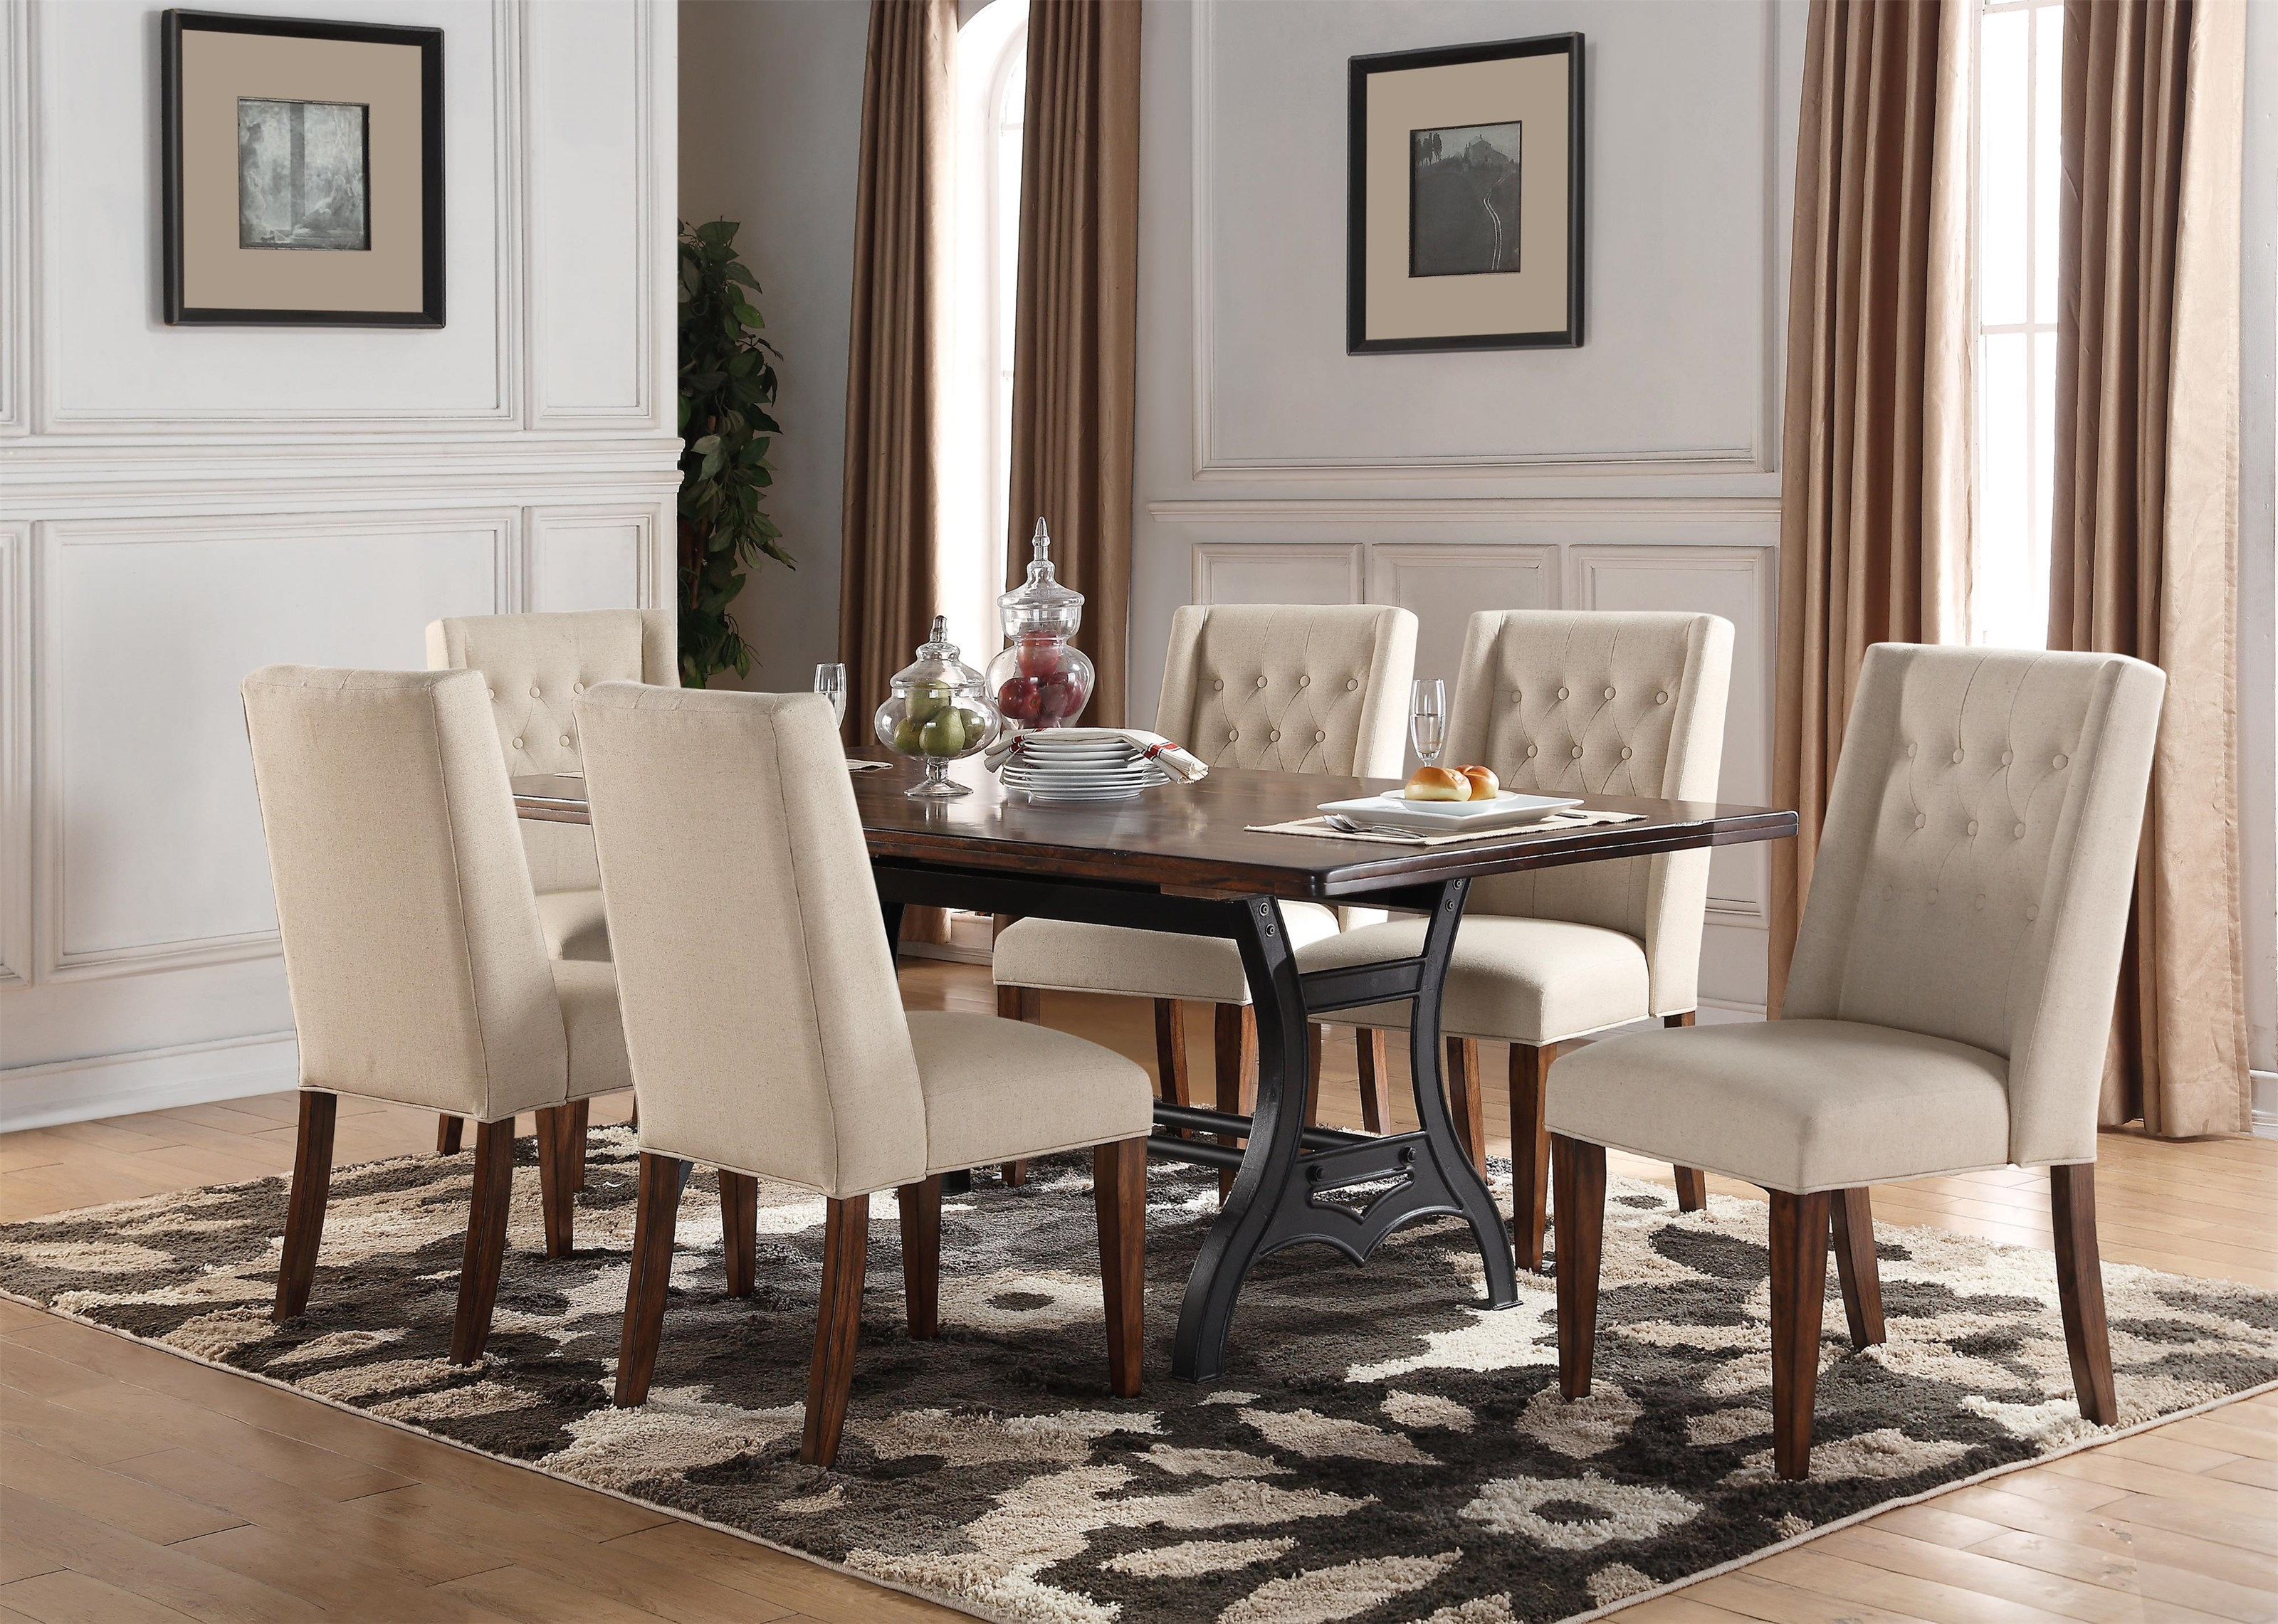 Creston Creston 5-Piece Dining Set with 4 Tufted Ch by Holland House at Morris Home